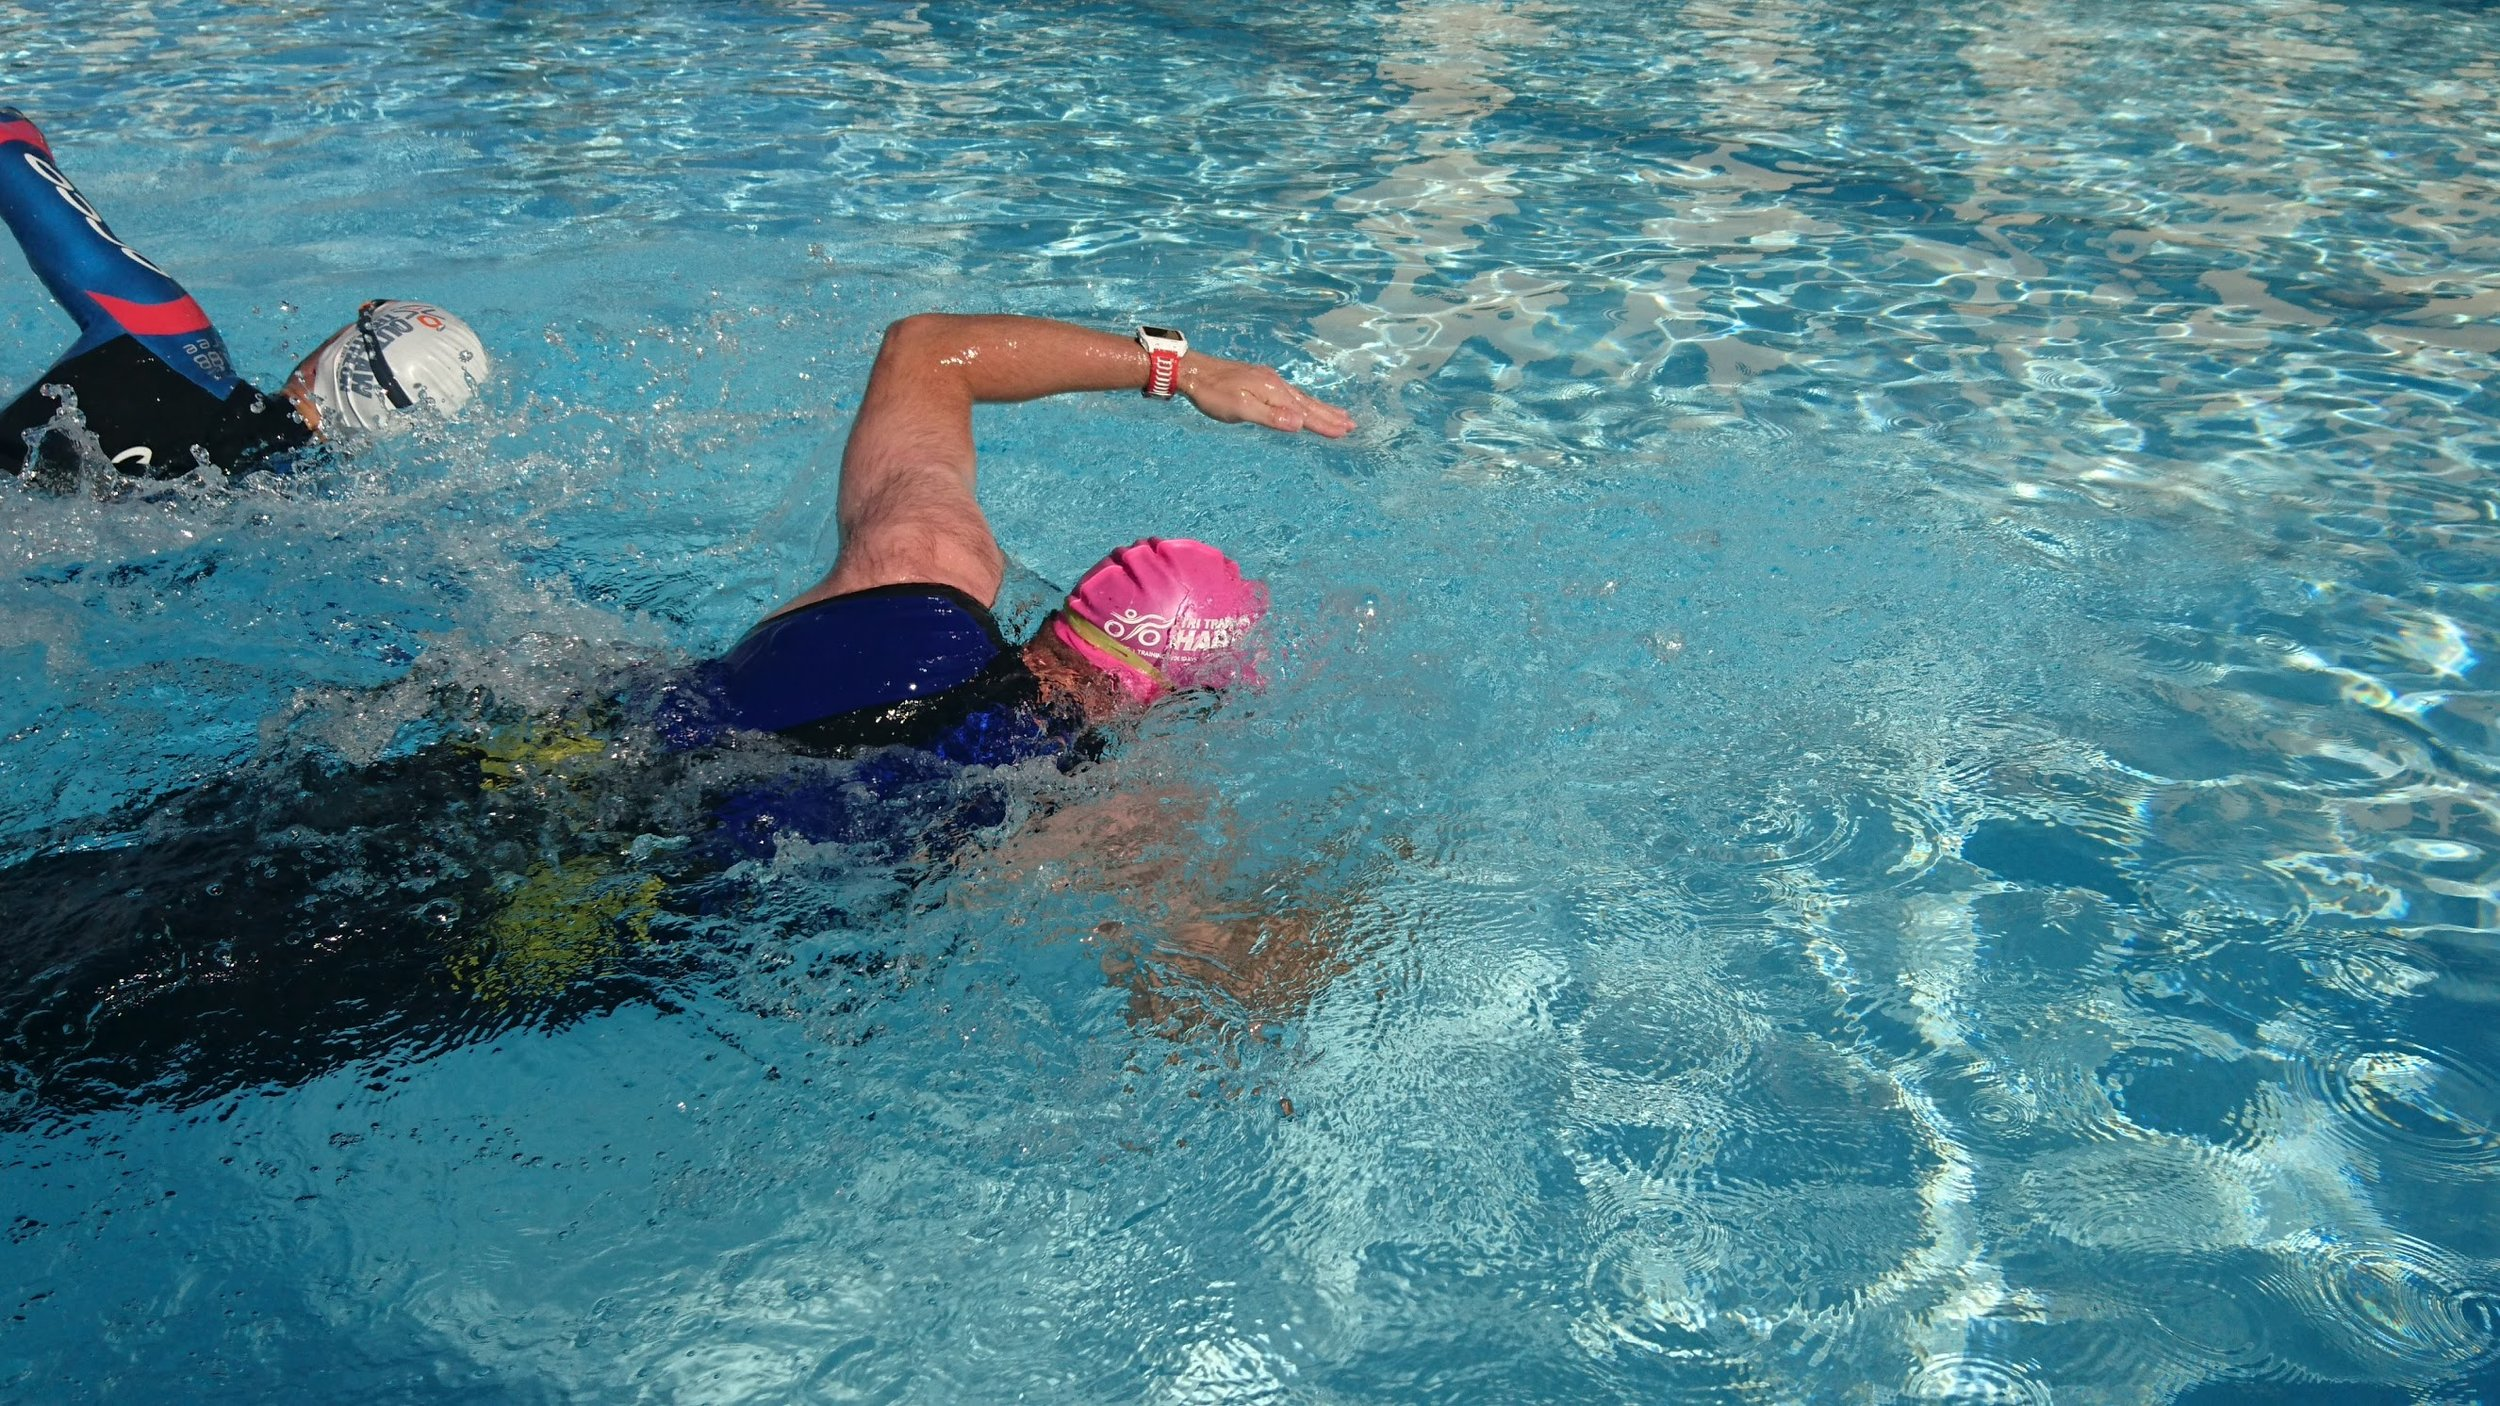 Swimming Technique may be a contributing factor to shoulder niggles